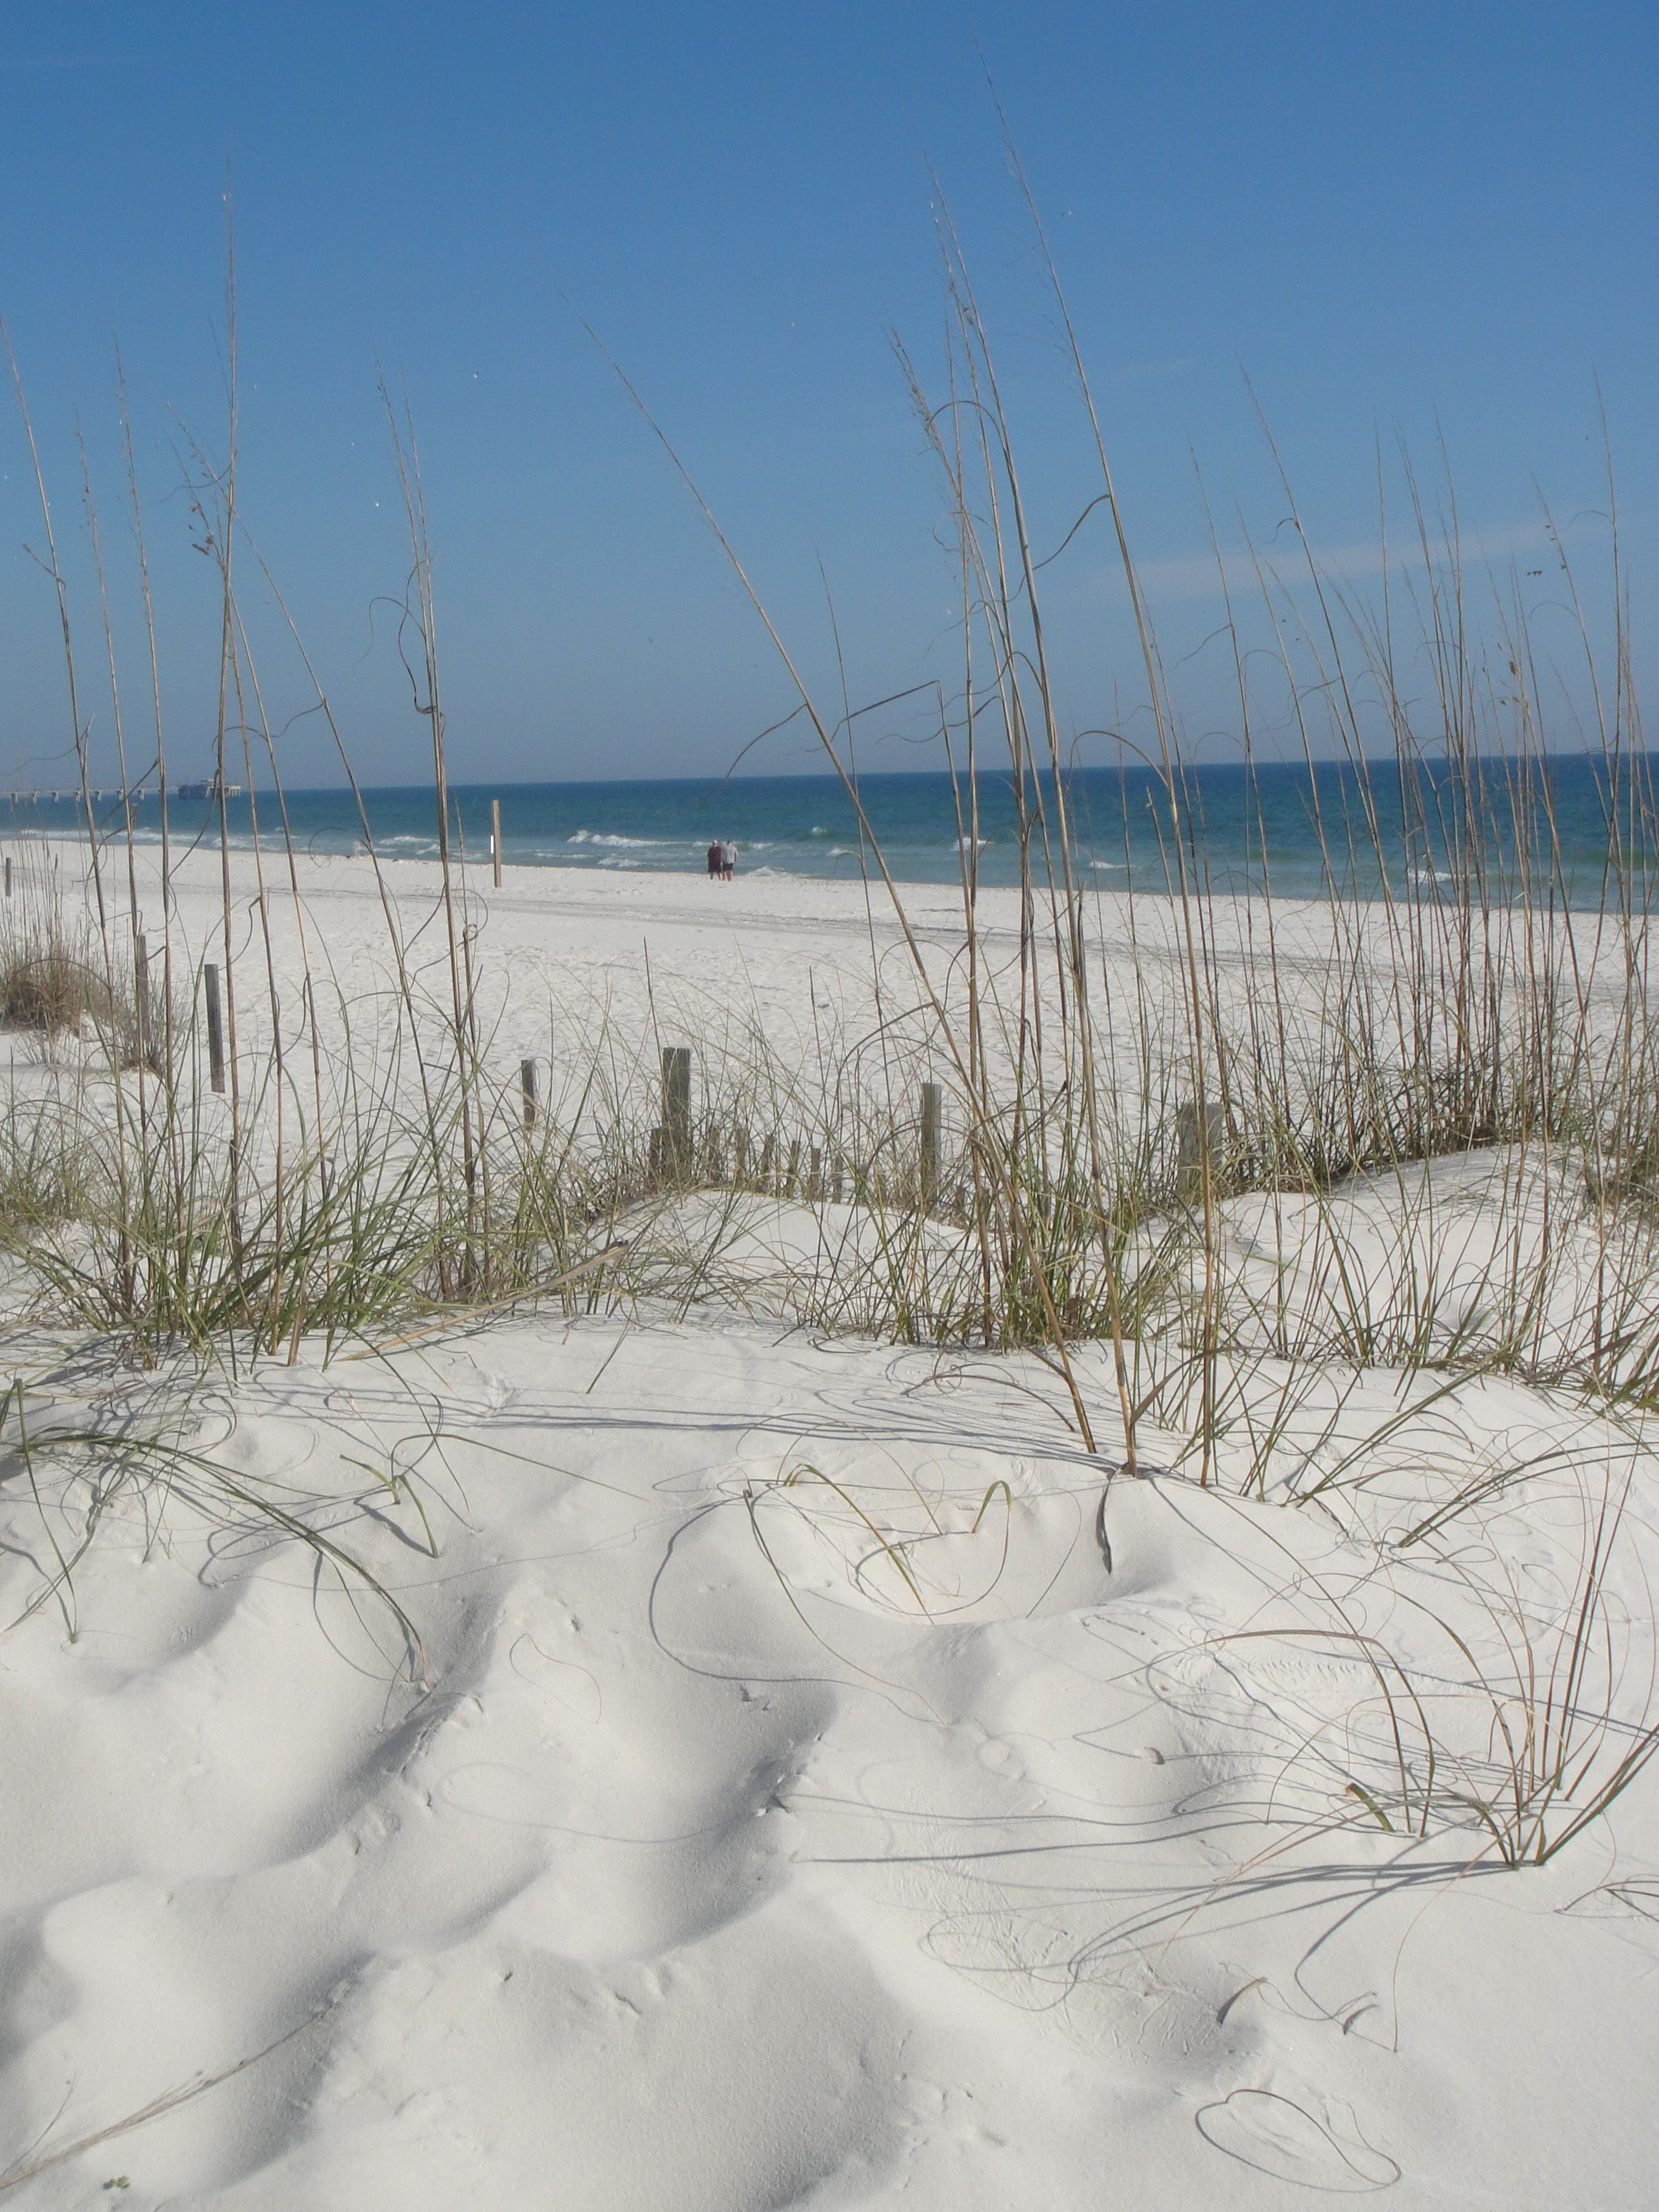 Orange Beach Alabama Near Gulf Ss The Sugar White Sands Here Are Unrivaled Outside And Florida